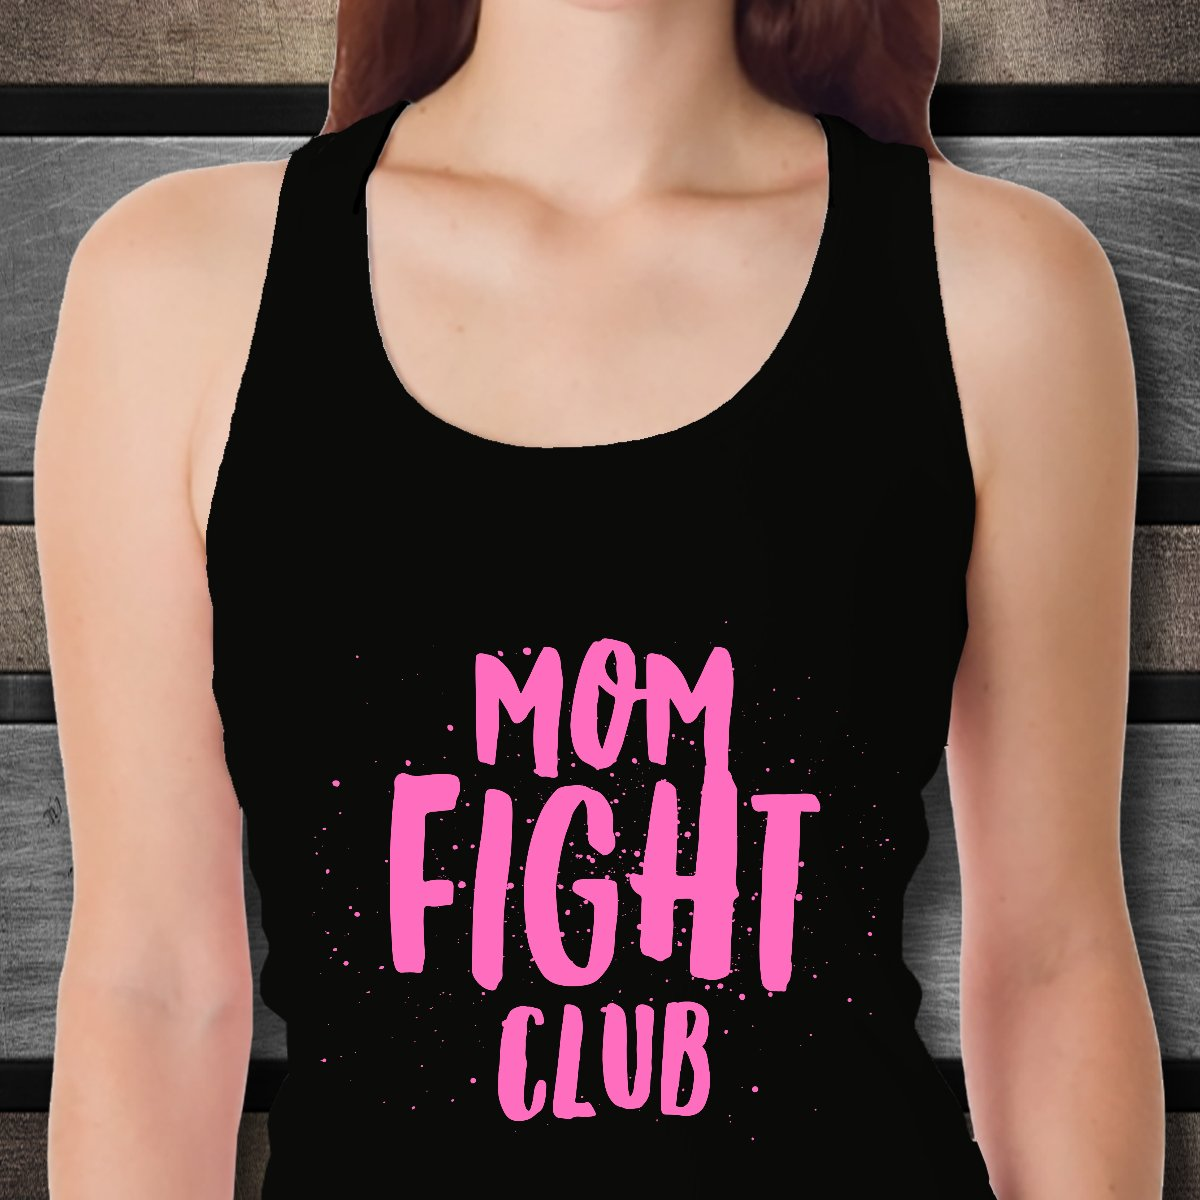 After last night, this is a slow #SundayMorning #DontTalkAbout #MomFightClub https://t.co/R92o8vVdxm https://t.co/bQxVoV4JZZ